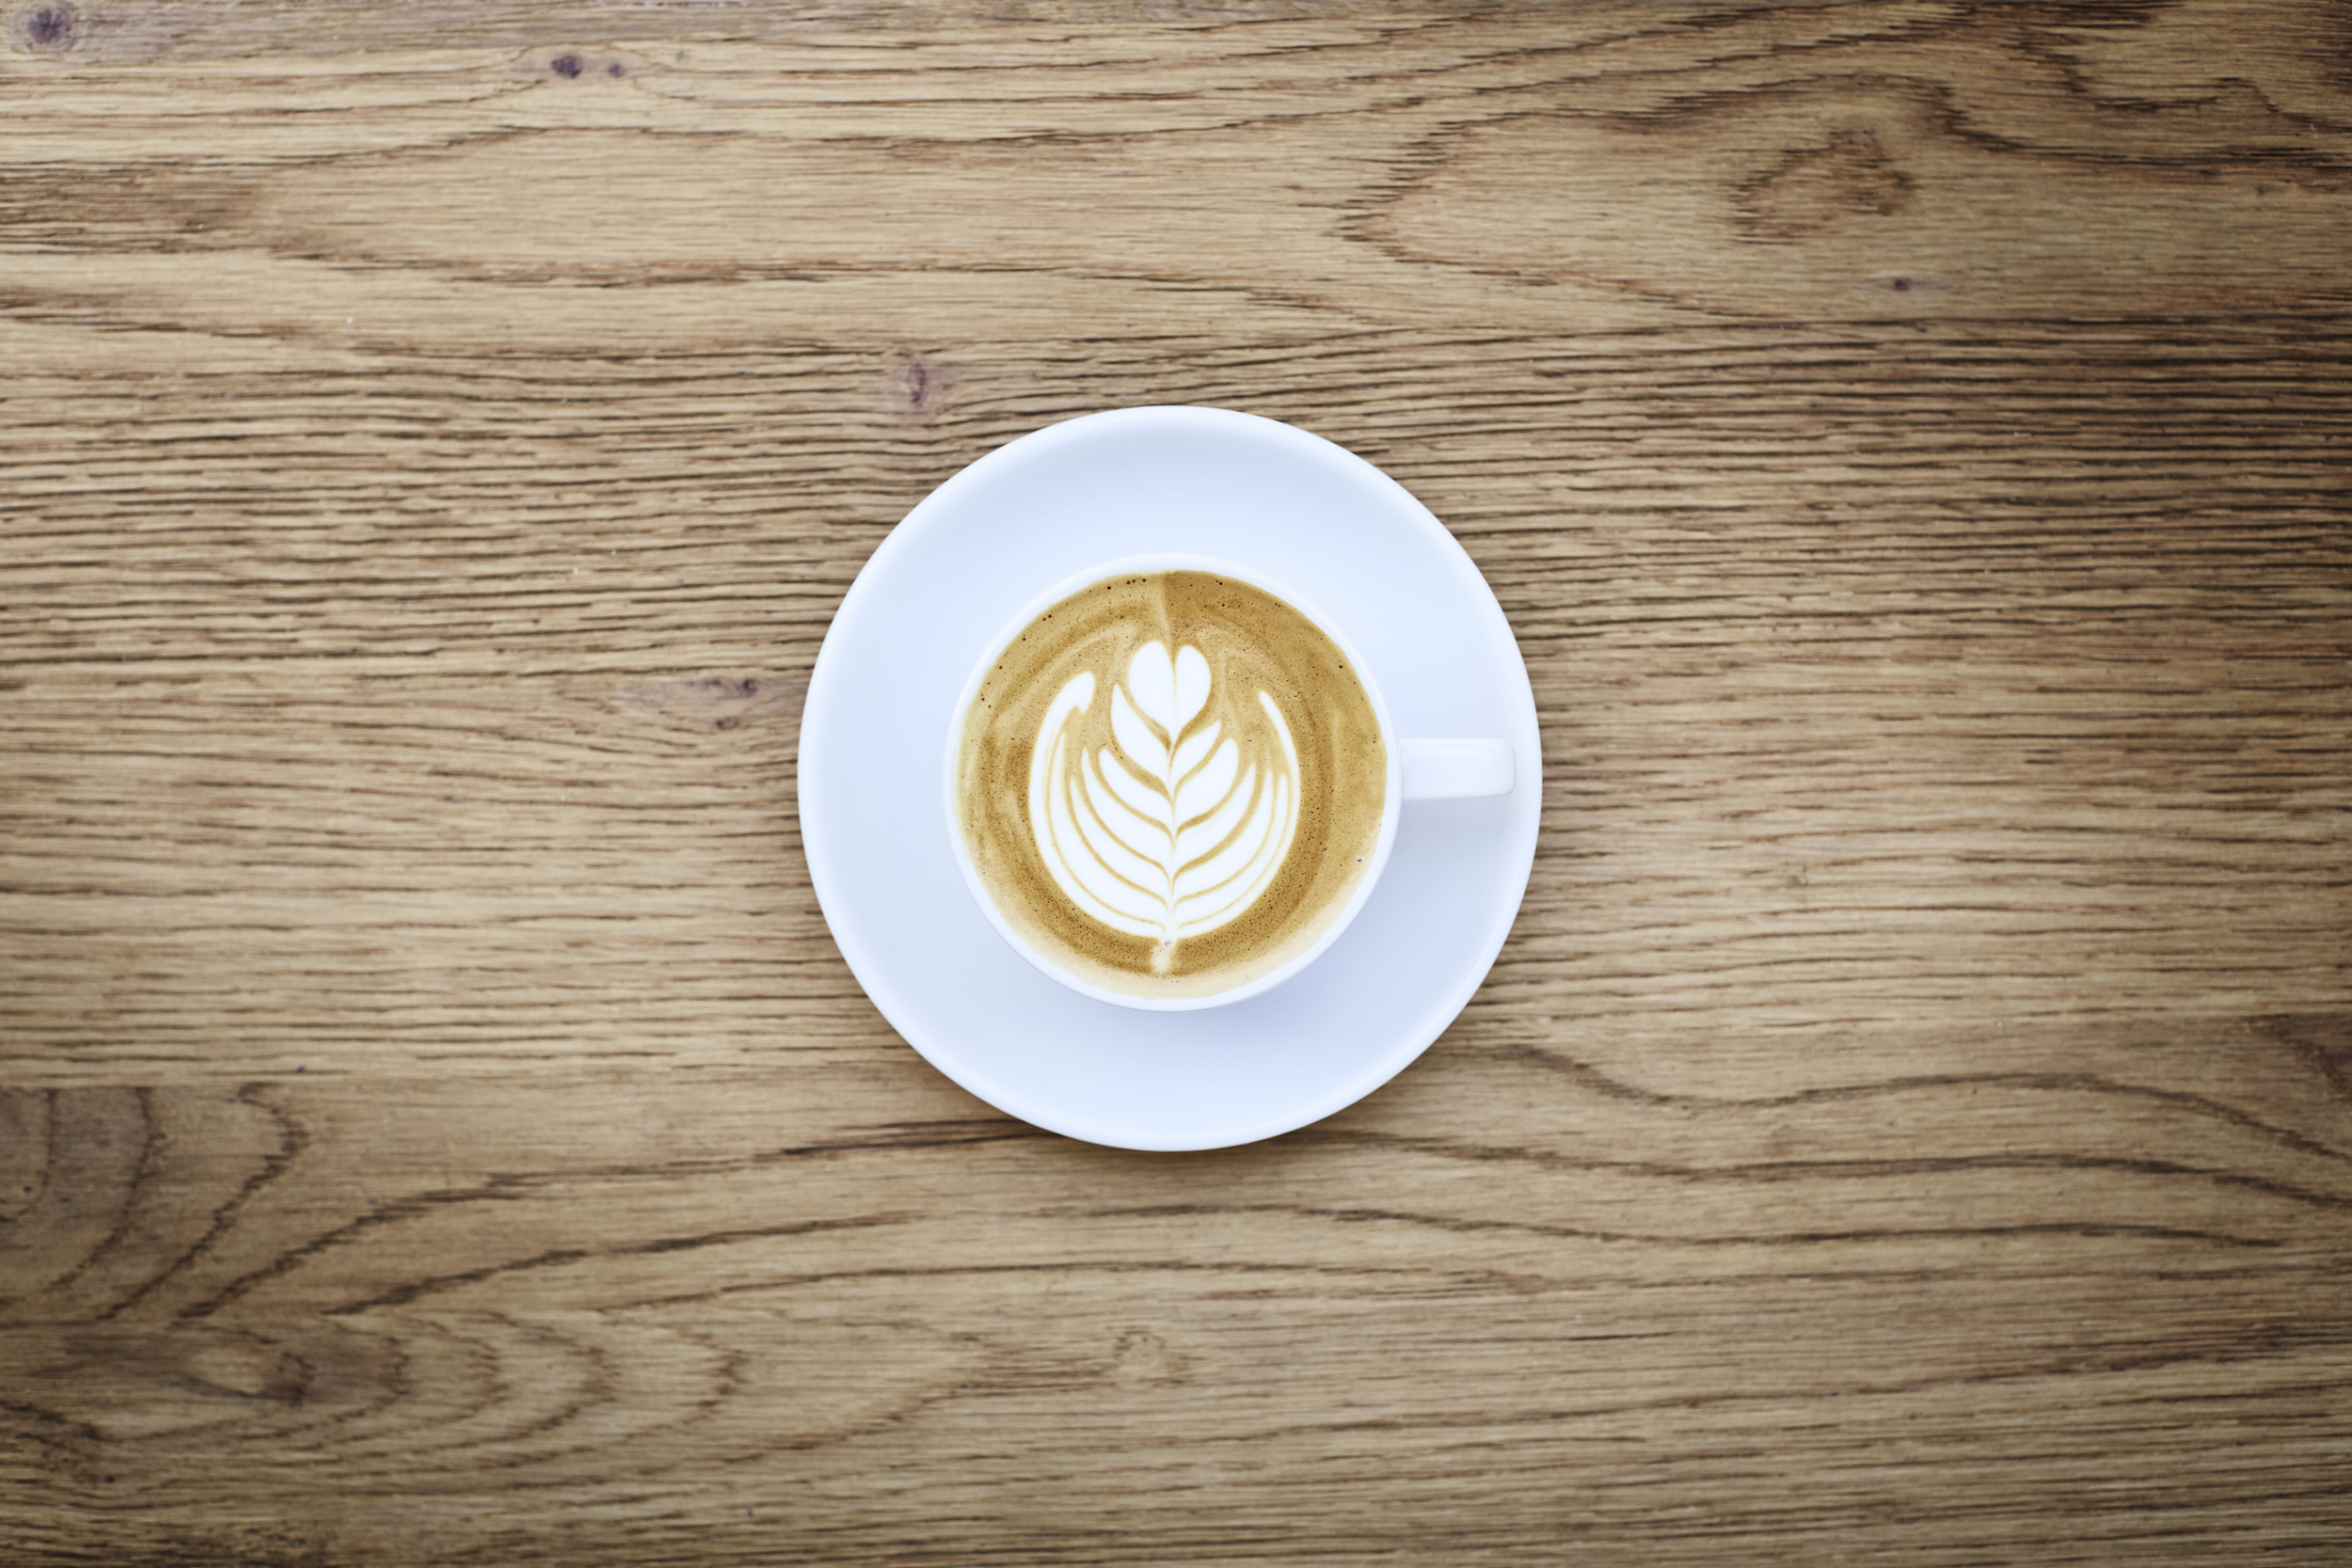 A flat white coffee in a white ceramic cup on a wood background